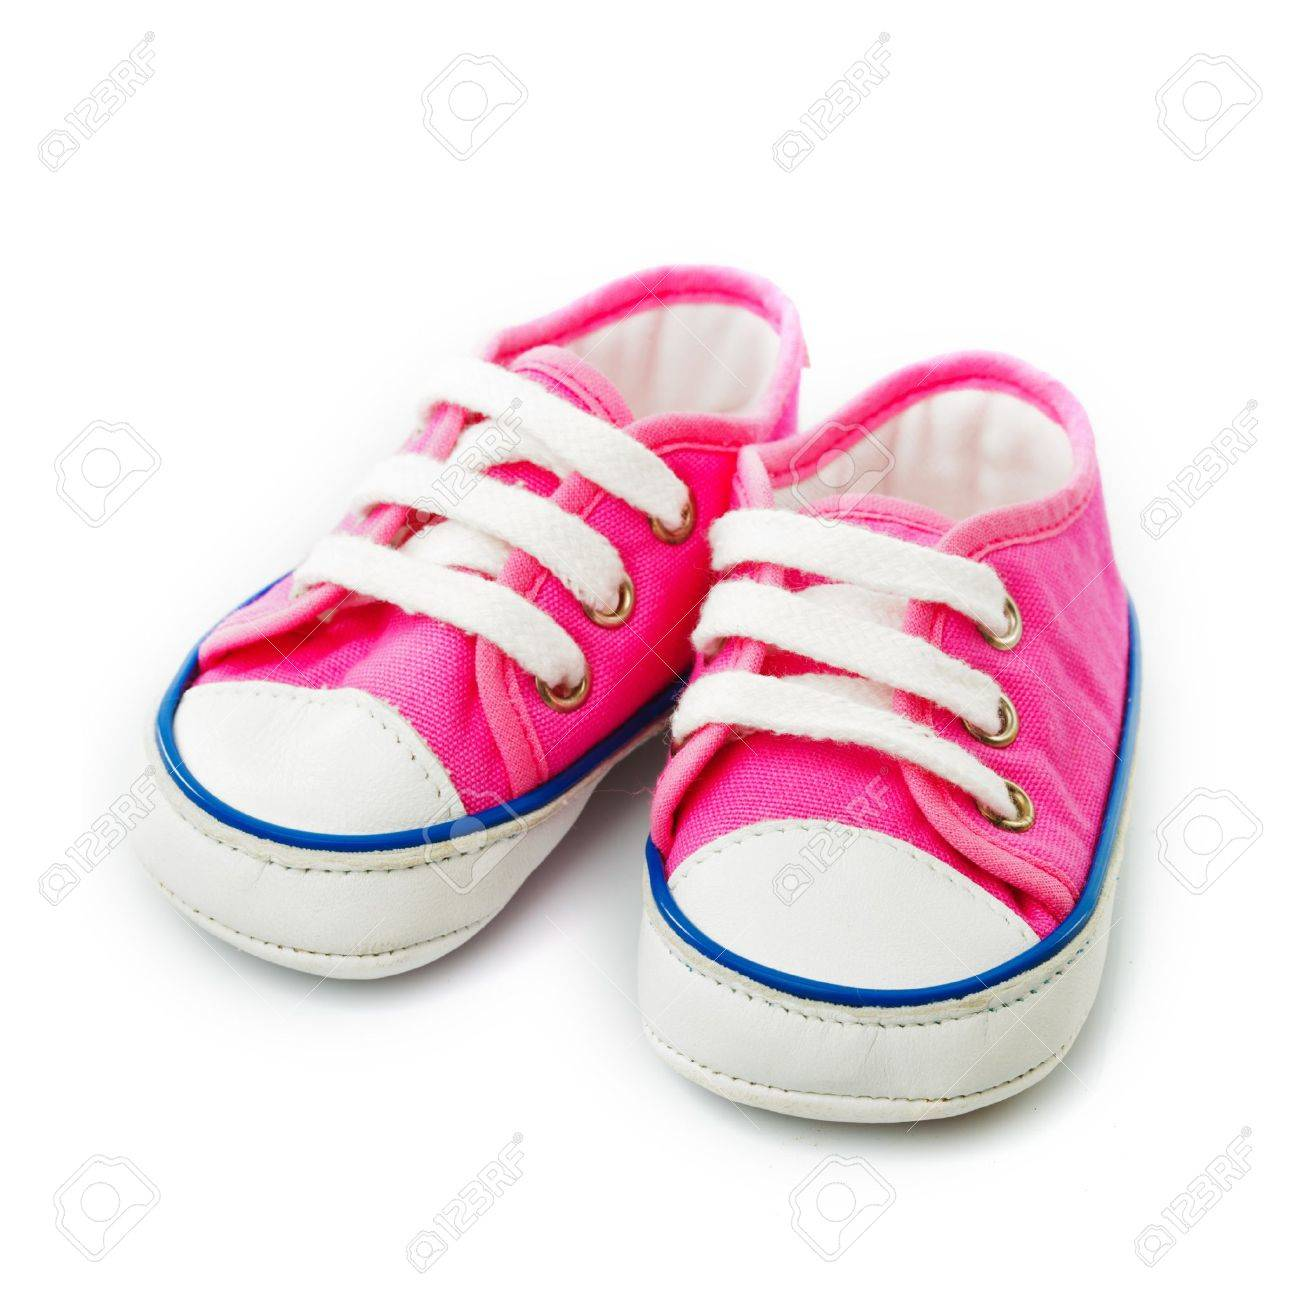 Pink Baby Footwear - Gymshoes Isolated On White Stock Photo ...